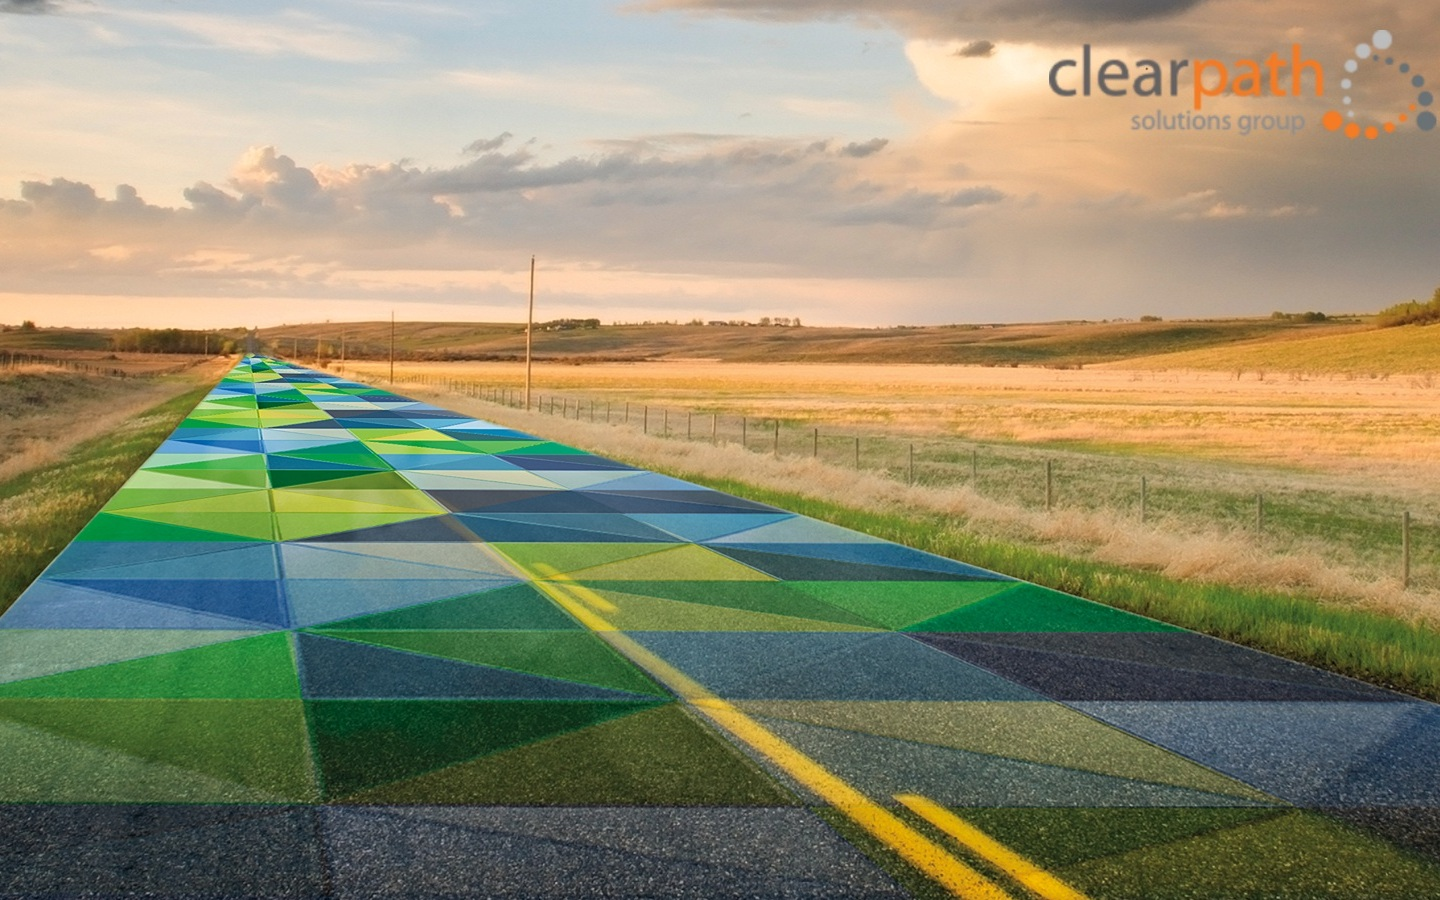 vmware_road_wallpaper-cpsg-wide-fill